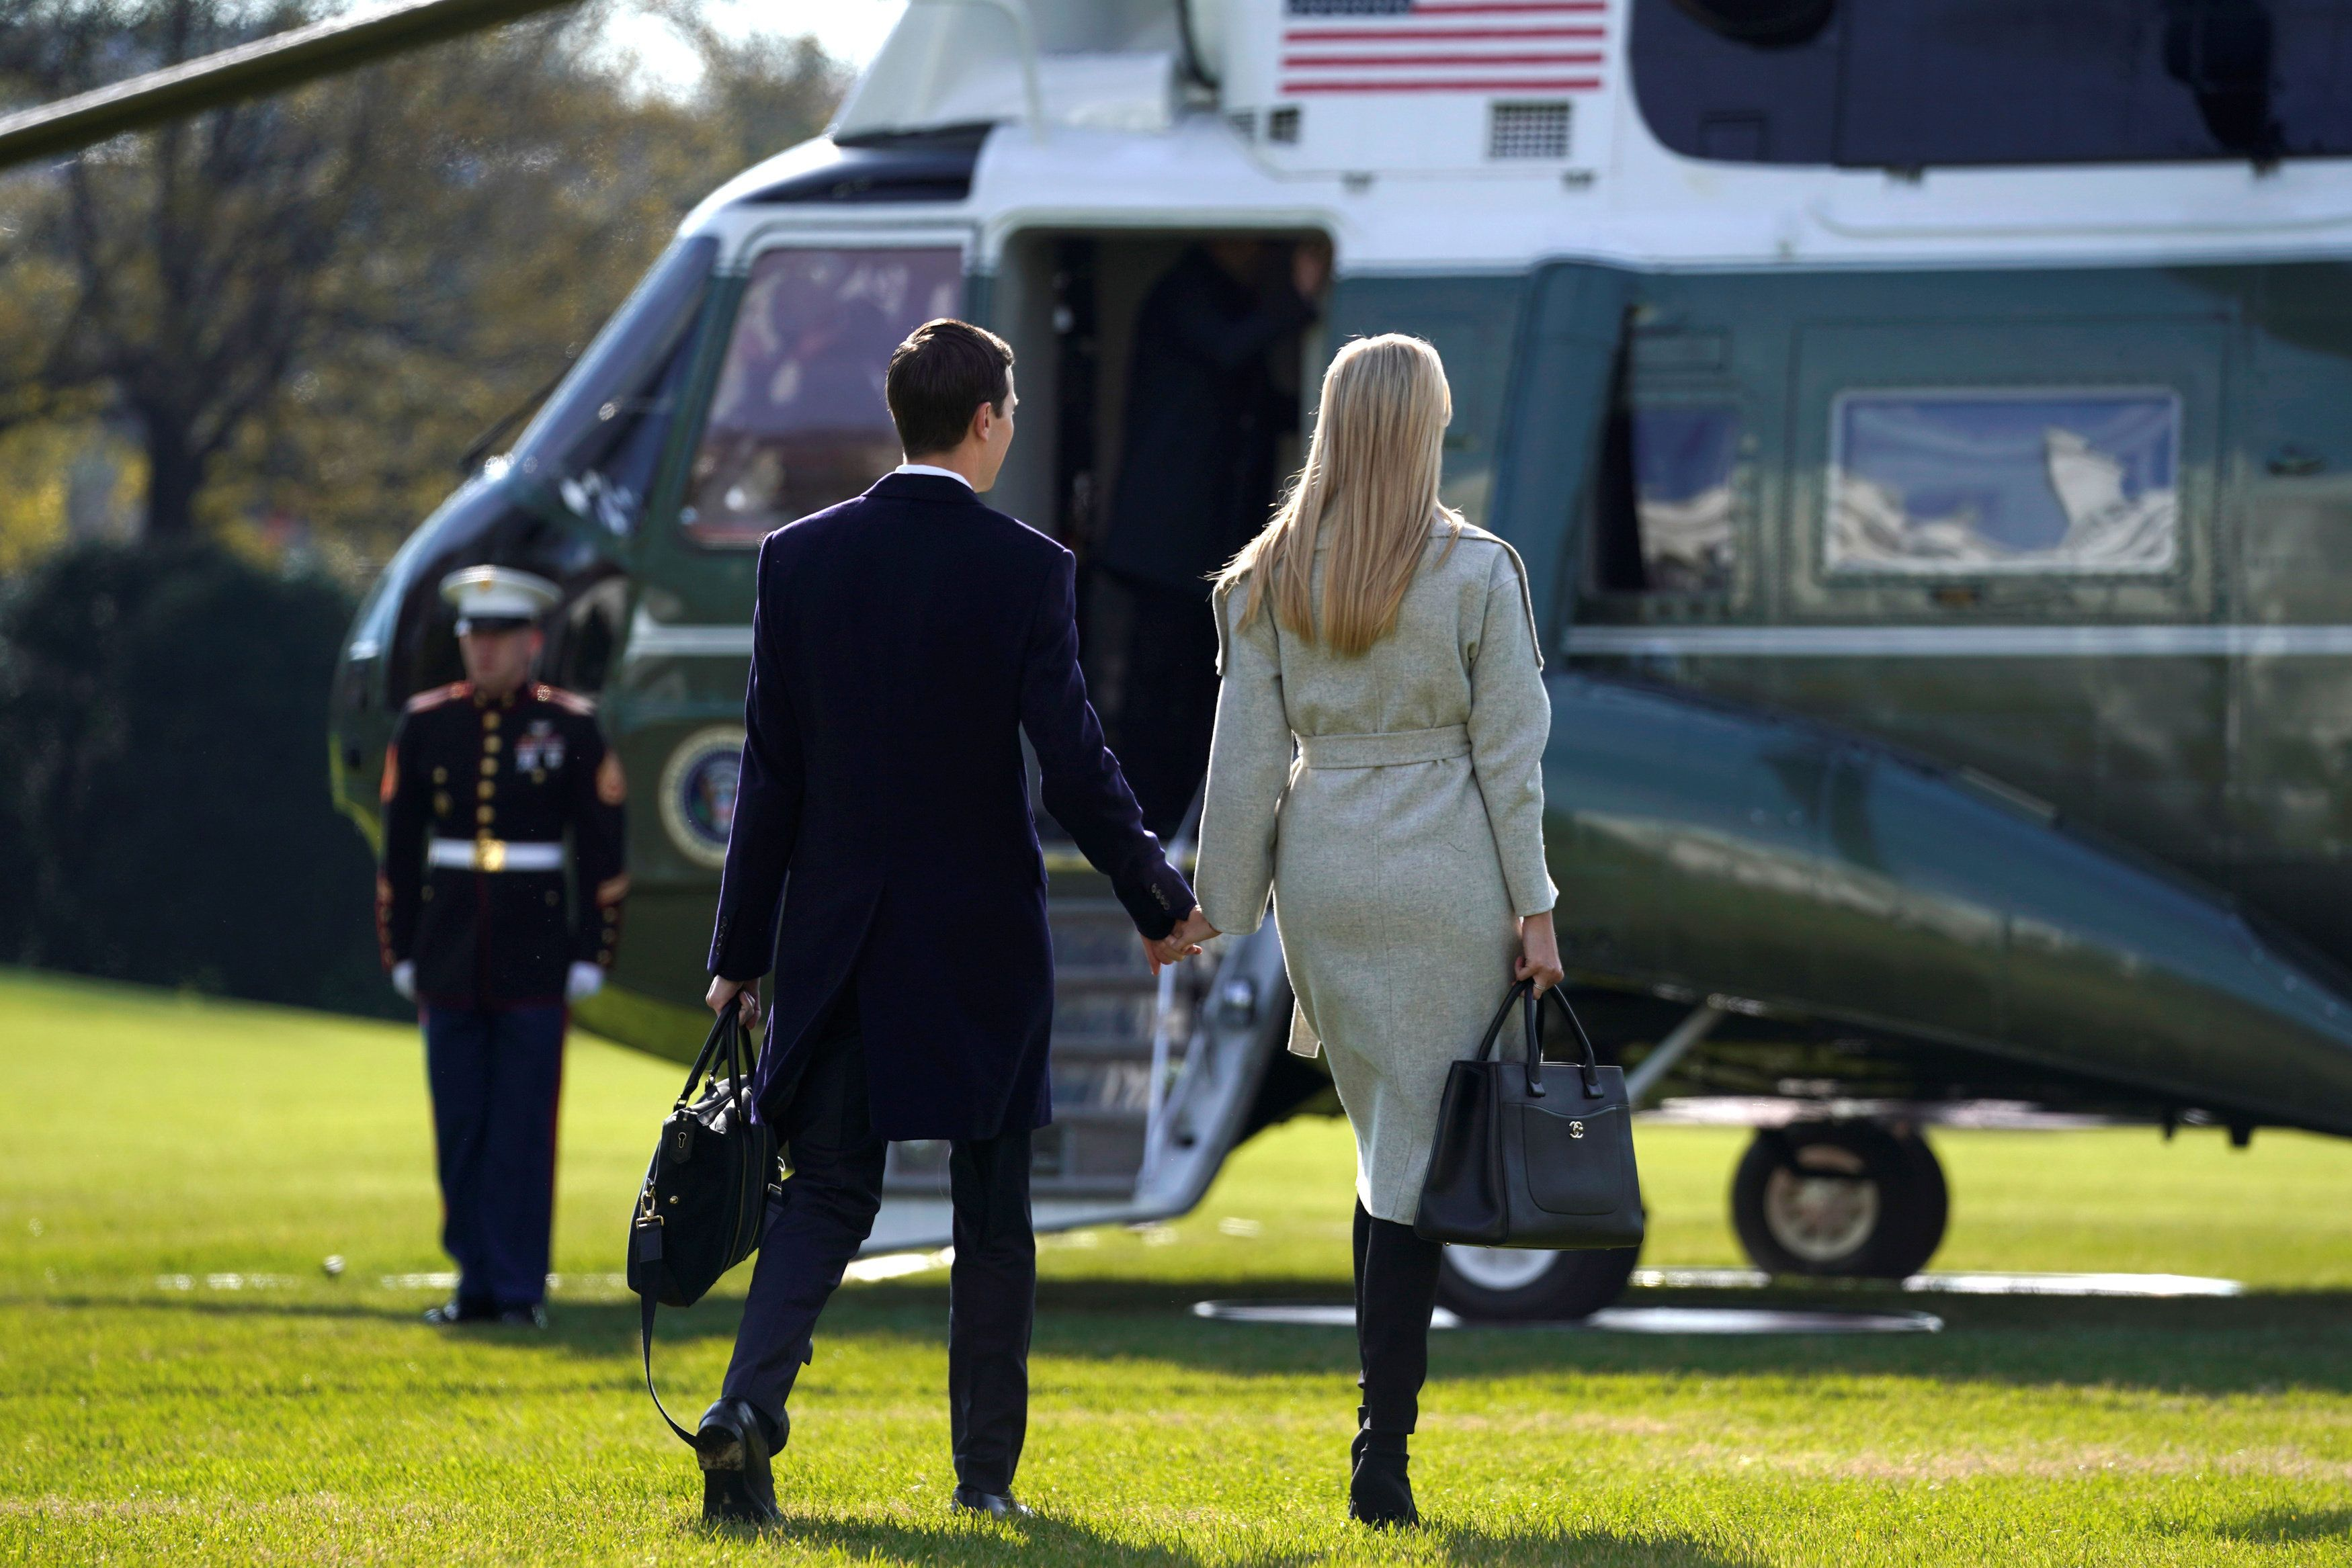 White House senior advisor Jared Kushner and his wife, fellow White House senior advisor Ivanka Trump, walk out to the Marine One helicopter to depart with U.S. President Donald Trump for travel to the G-20 summit in Argentina from the White House in Washington, U.S., November 29, 2018. REUTERS/Jonathan Ernst